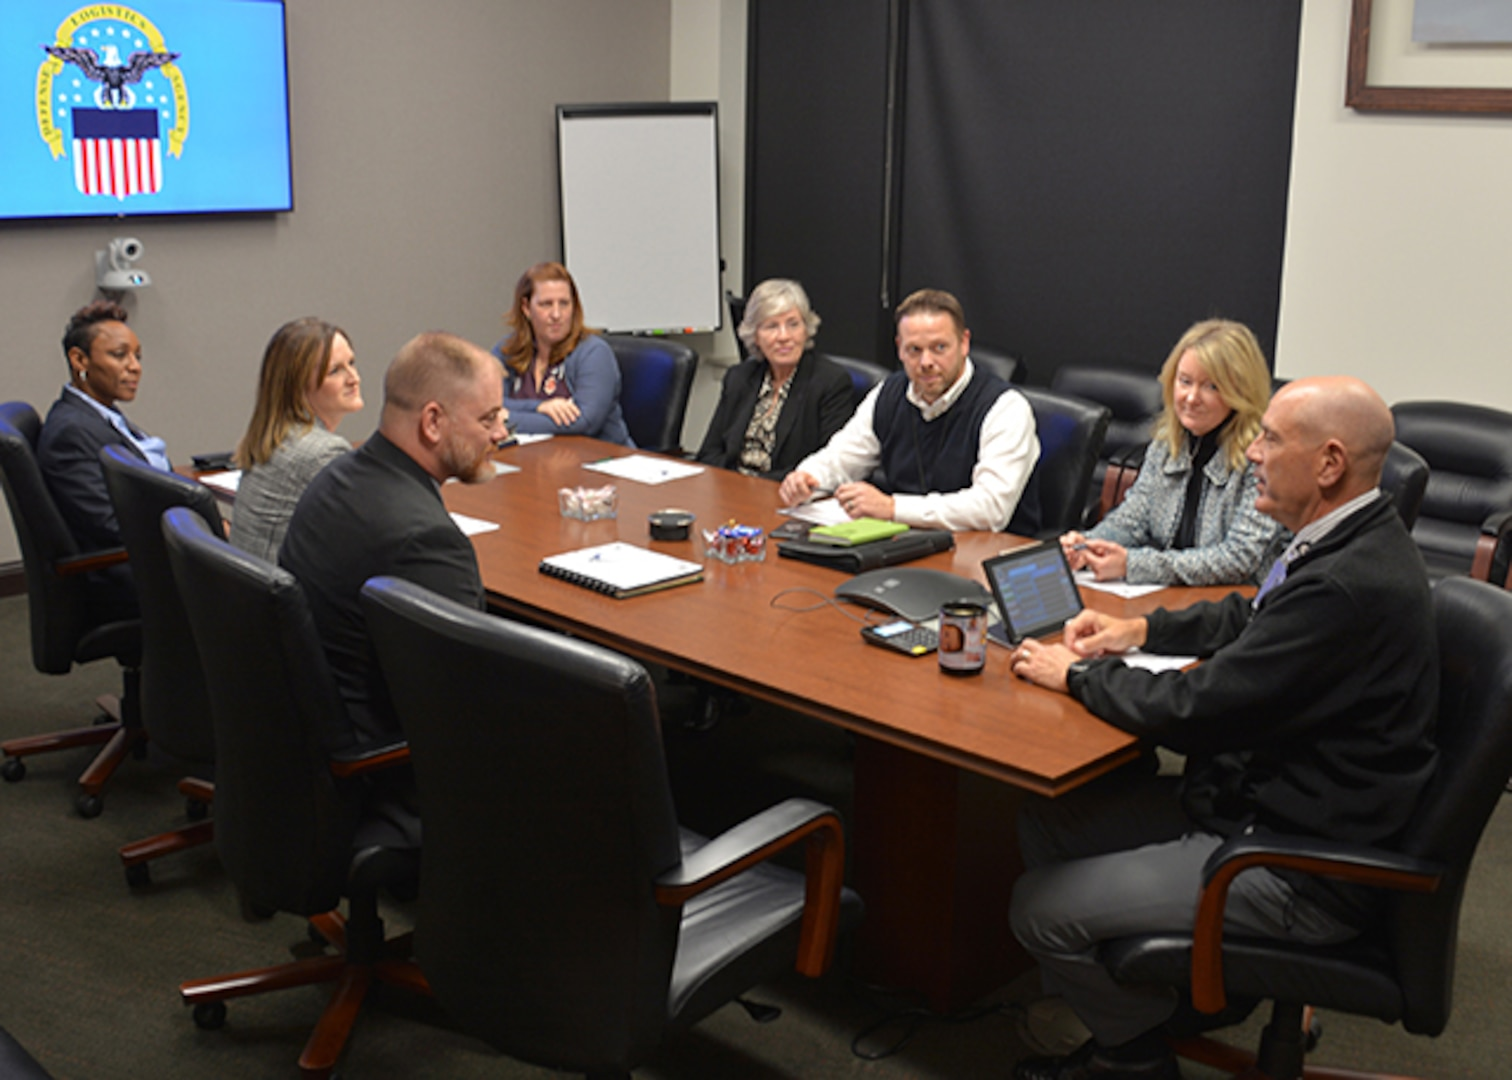 Air Force and Aviation employees talk around conference table